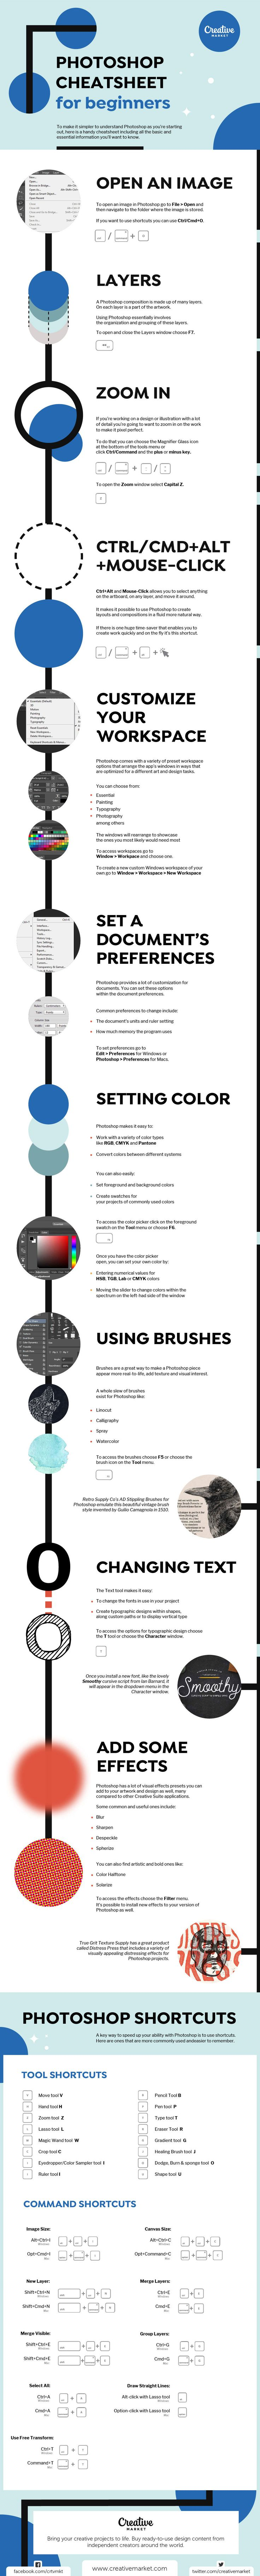 #Photoshop #Cheatsheet for beginners [#infographic] (Tech Hacks Business)